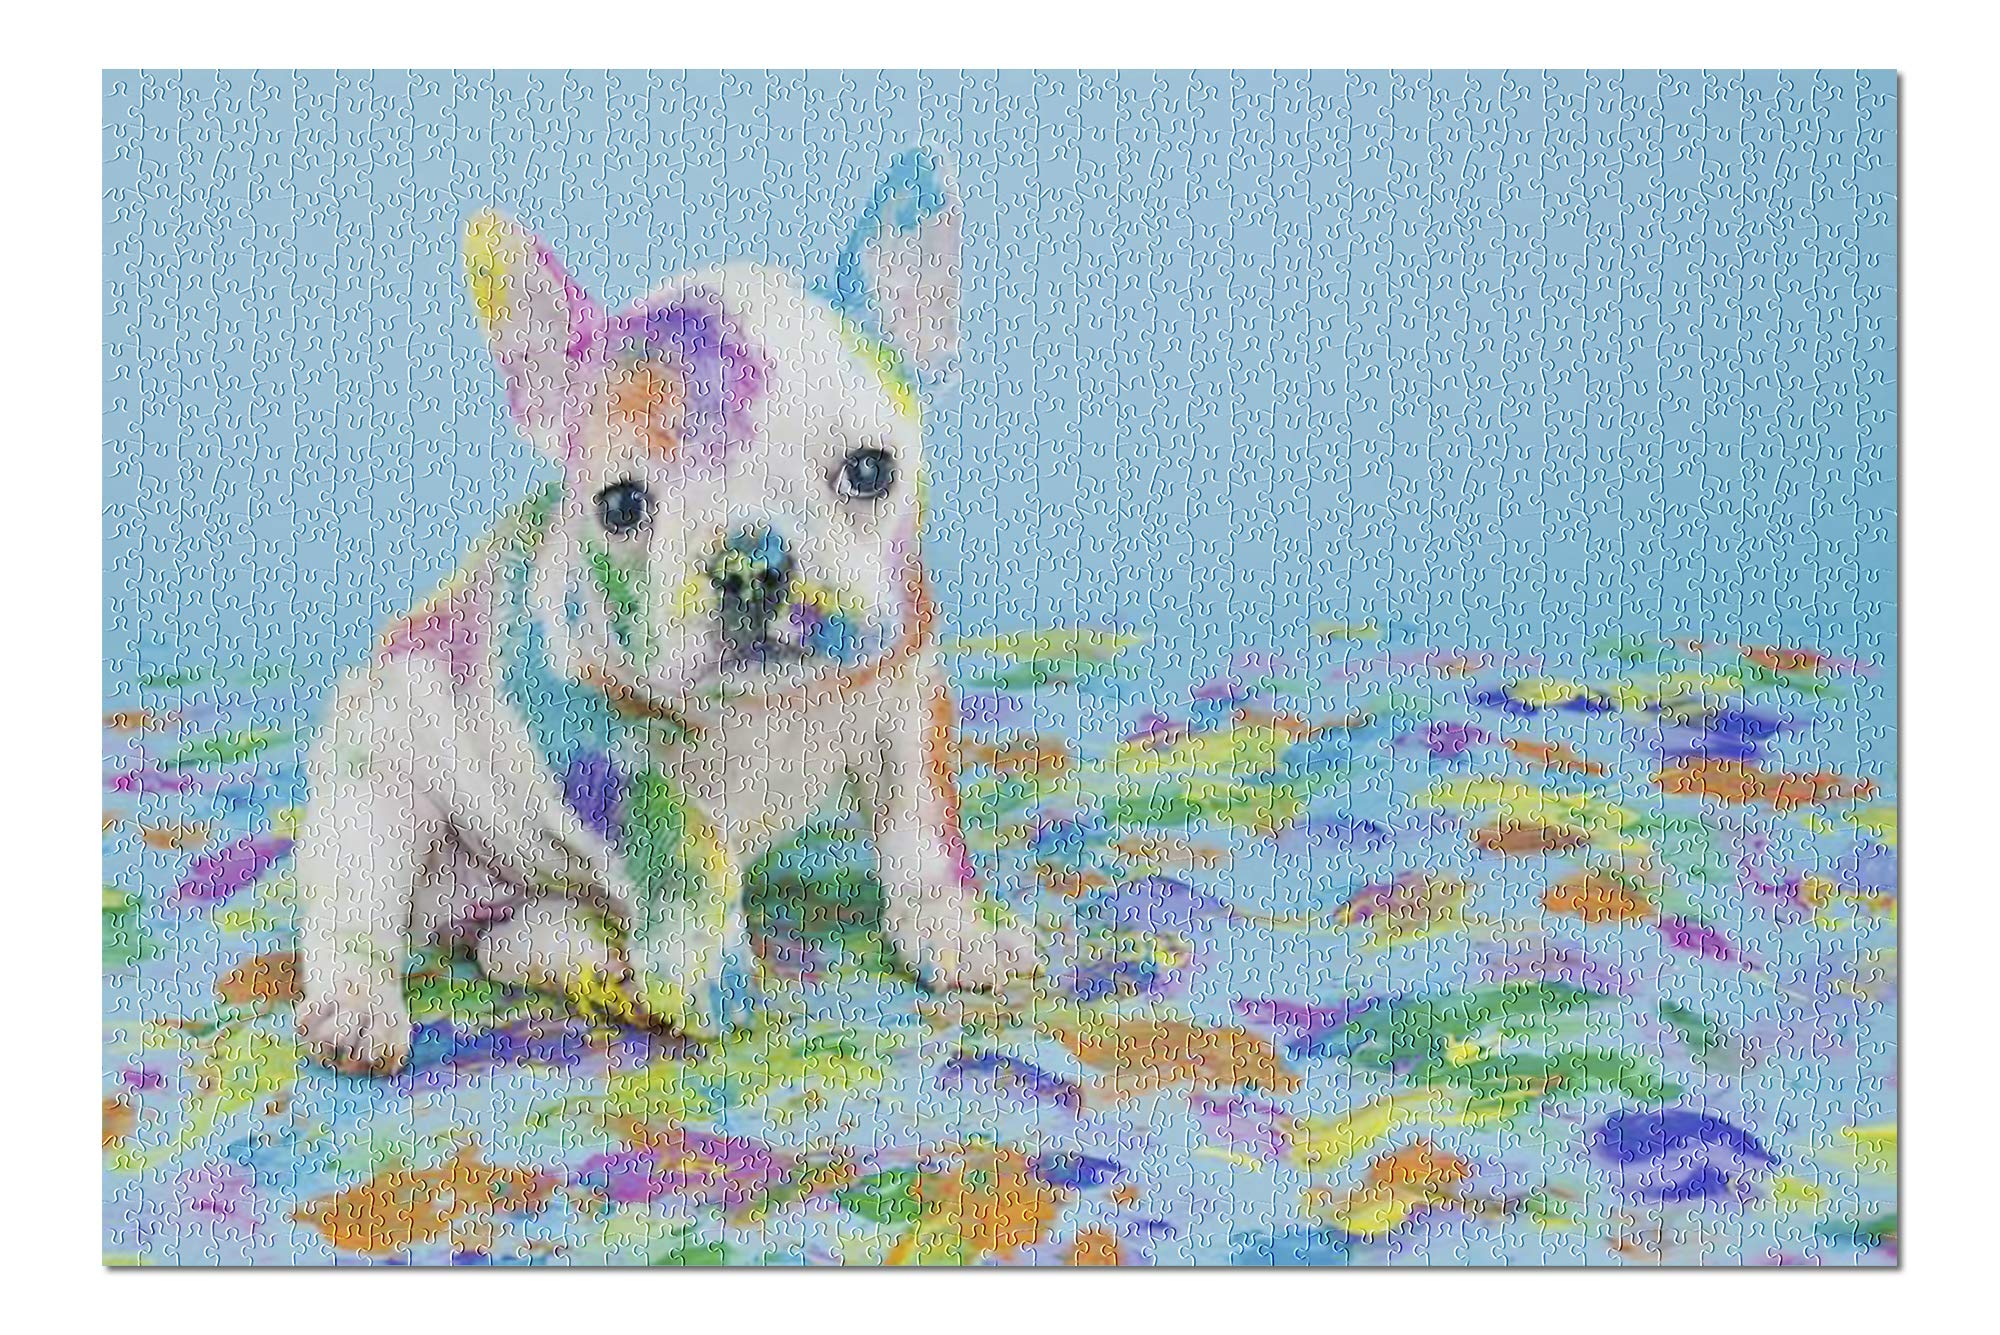 Rainbow Painted Puppy Dog 9006396 (19x27 Premium 1000 Piece Jigsaw Puzzle, Made in USA!)